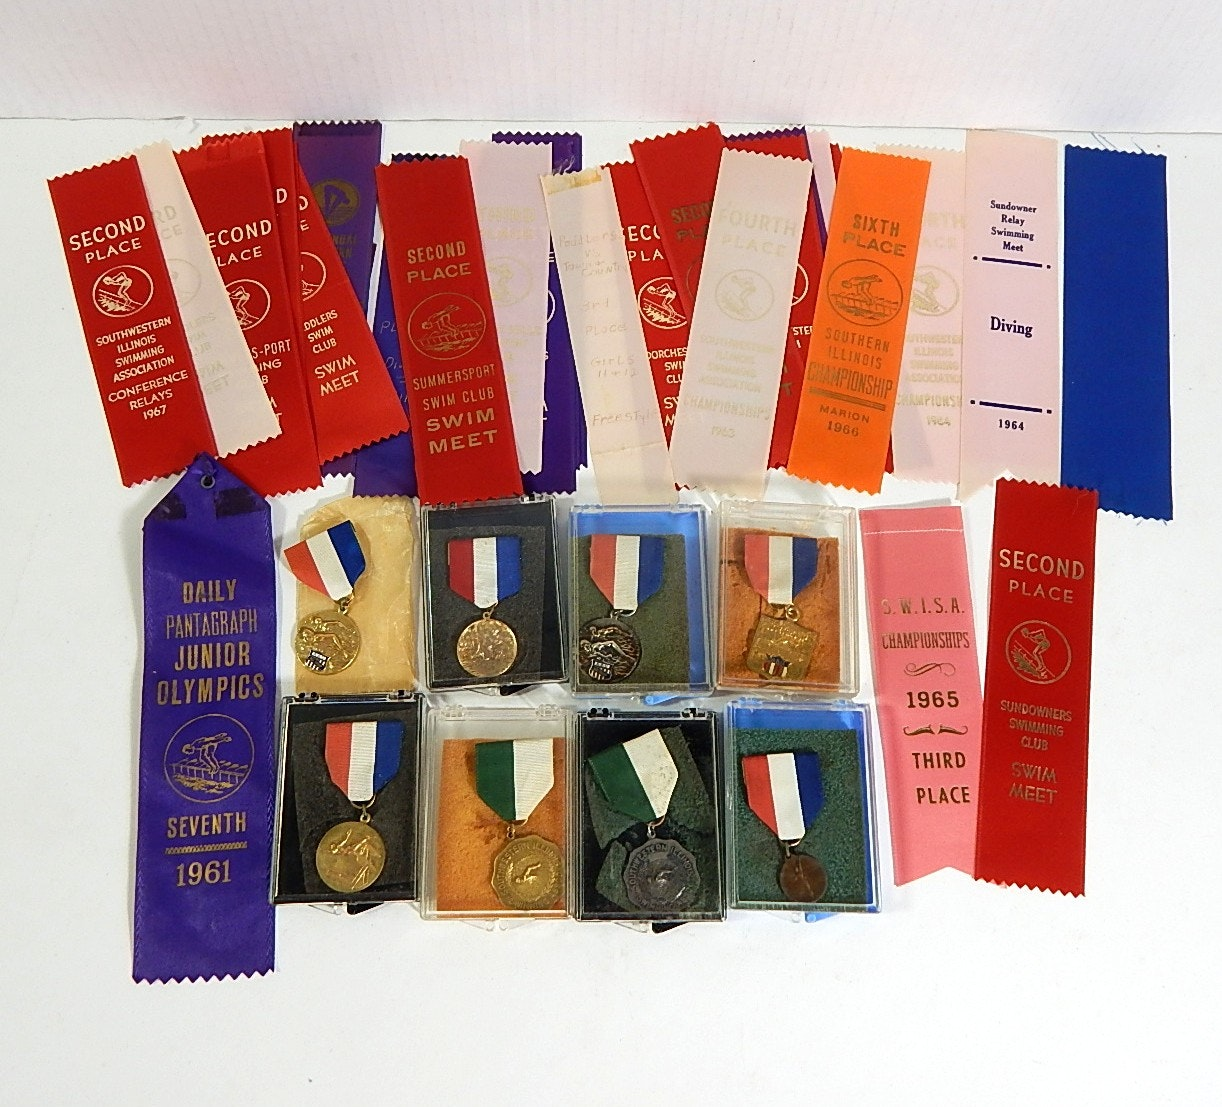 Vintage 1960s Medals and Ribbons for Swimming and Diving - Jr. Olympics